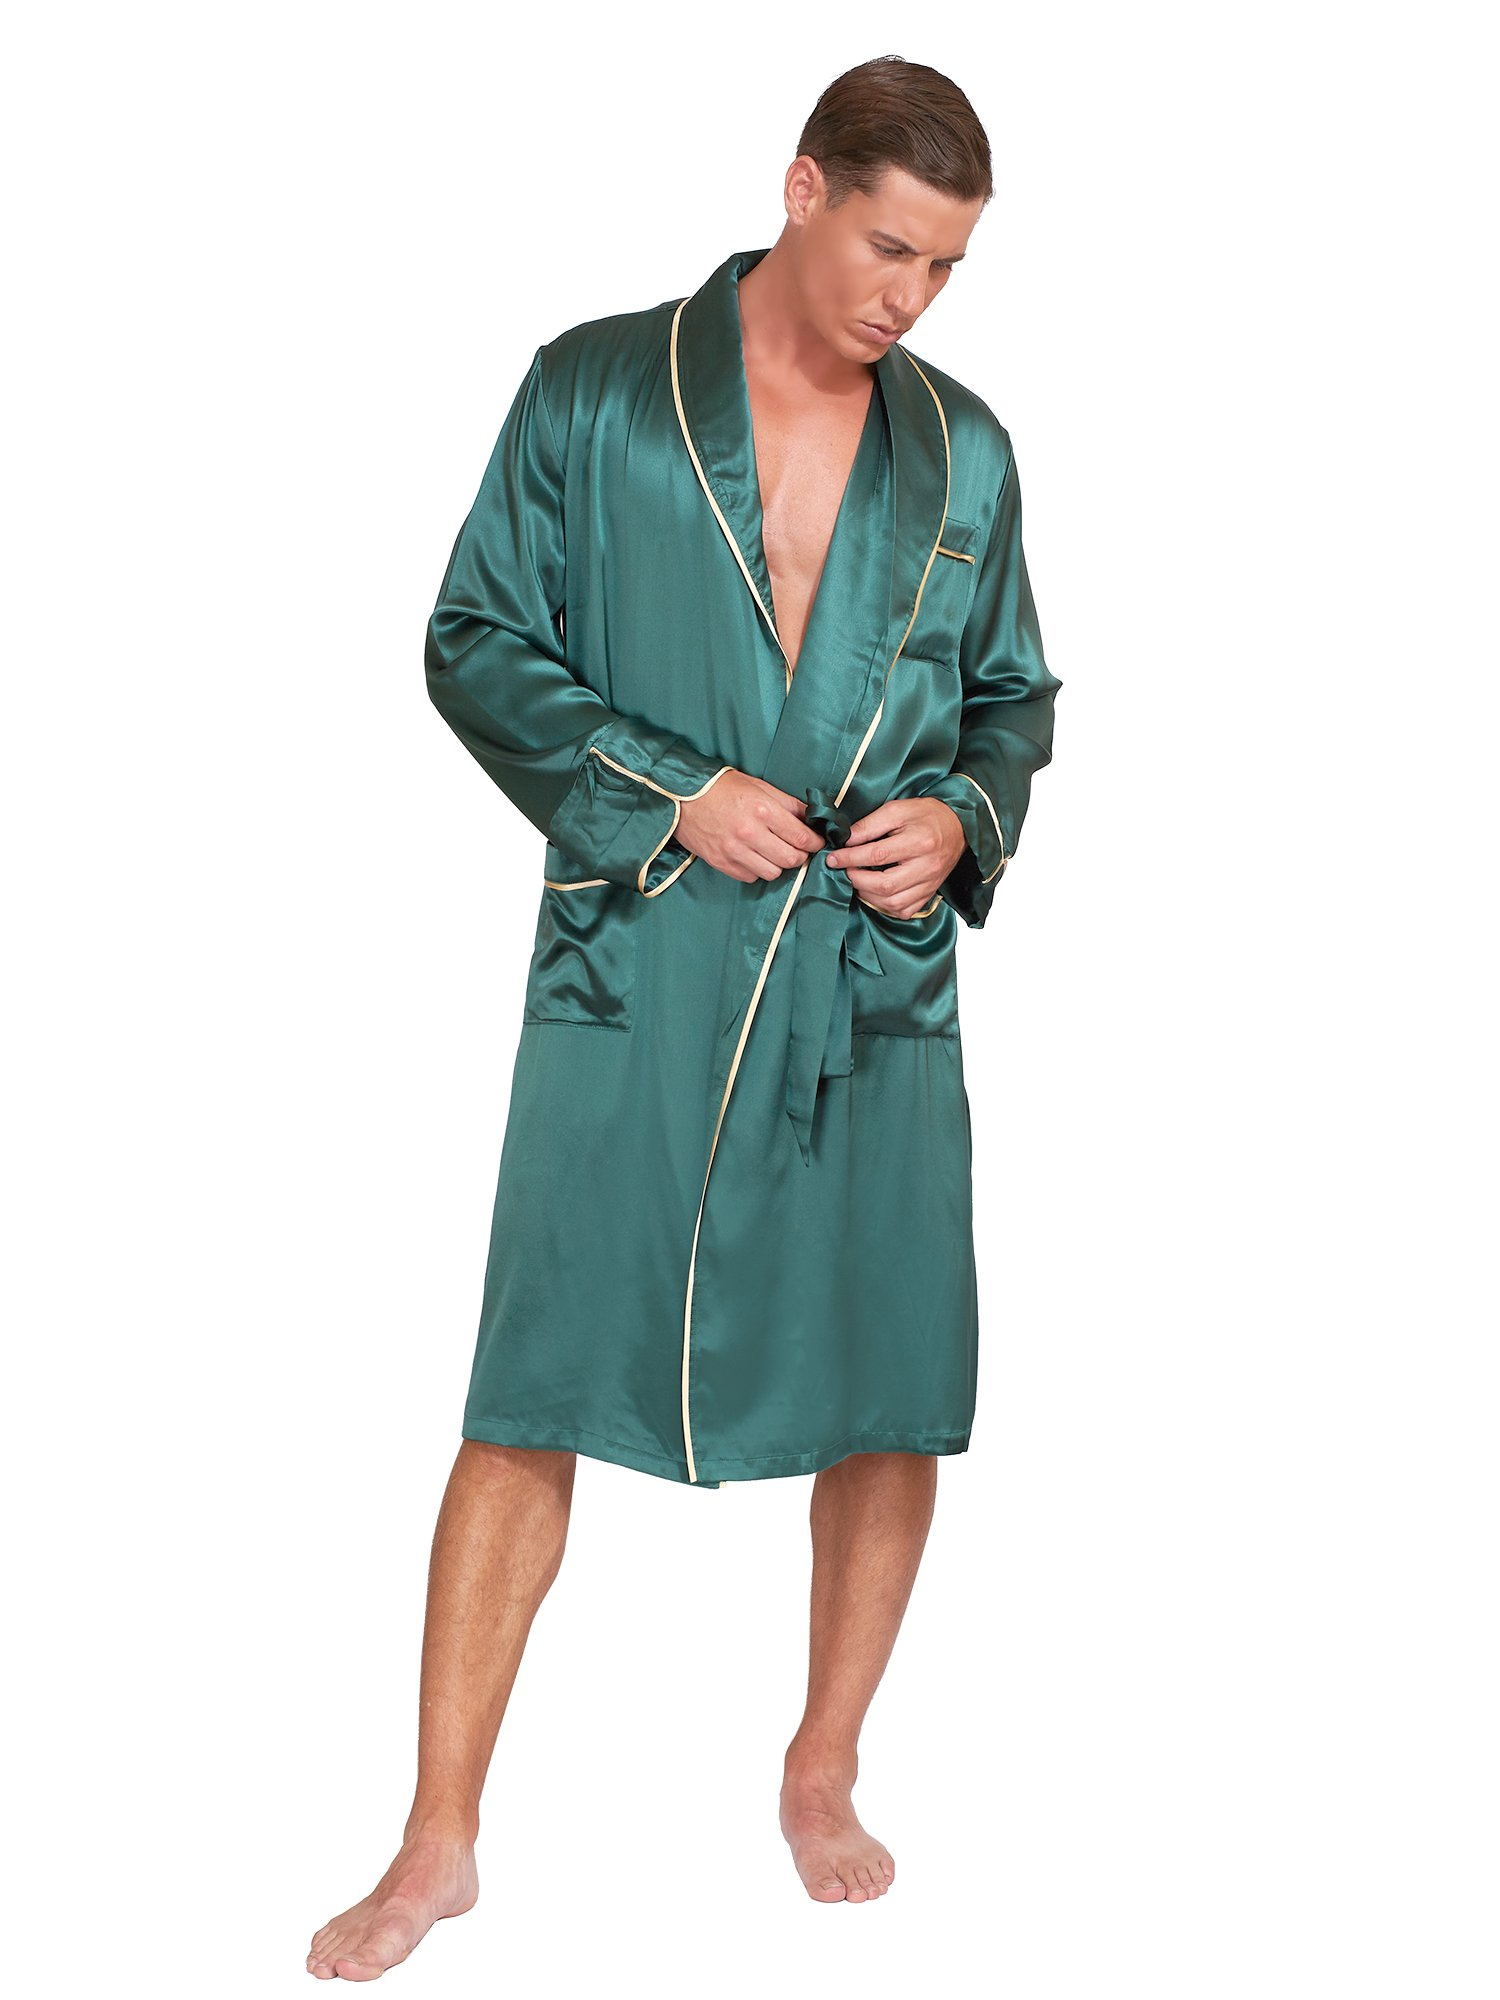 MYK Silk - Men's Classic Silk Robe - Gift Box included (Large, Dark Green)